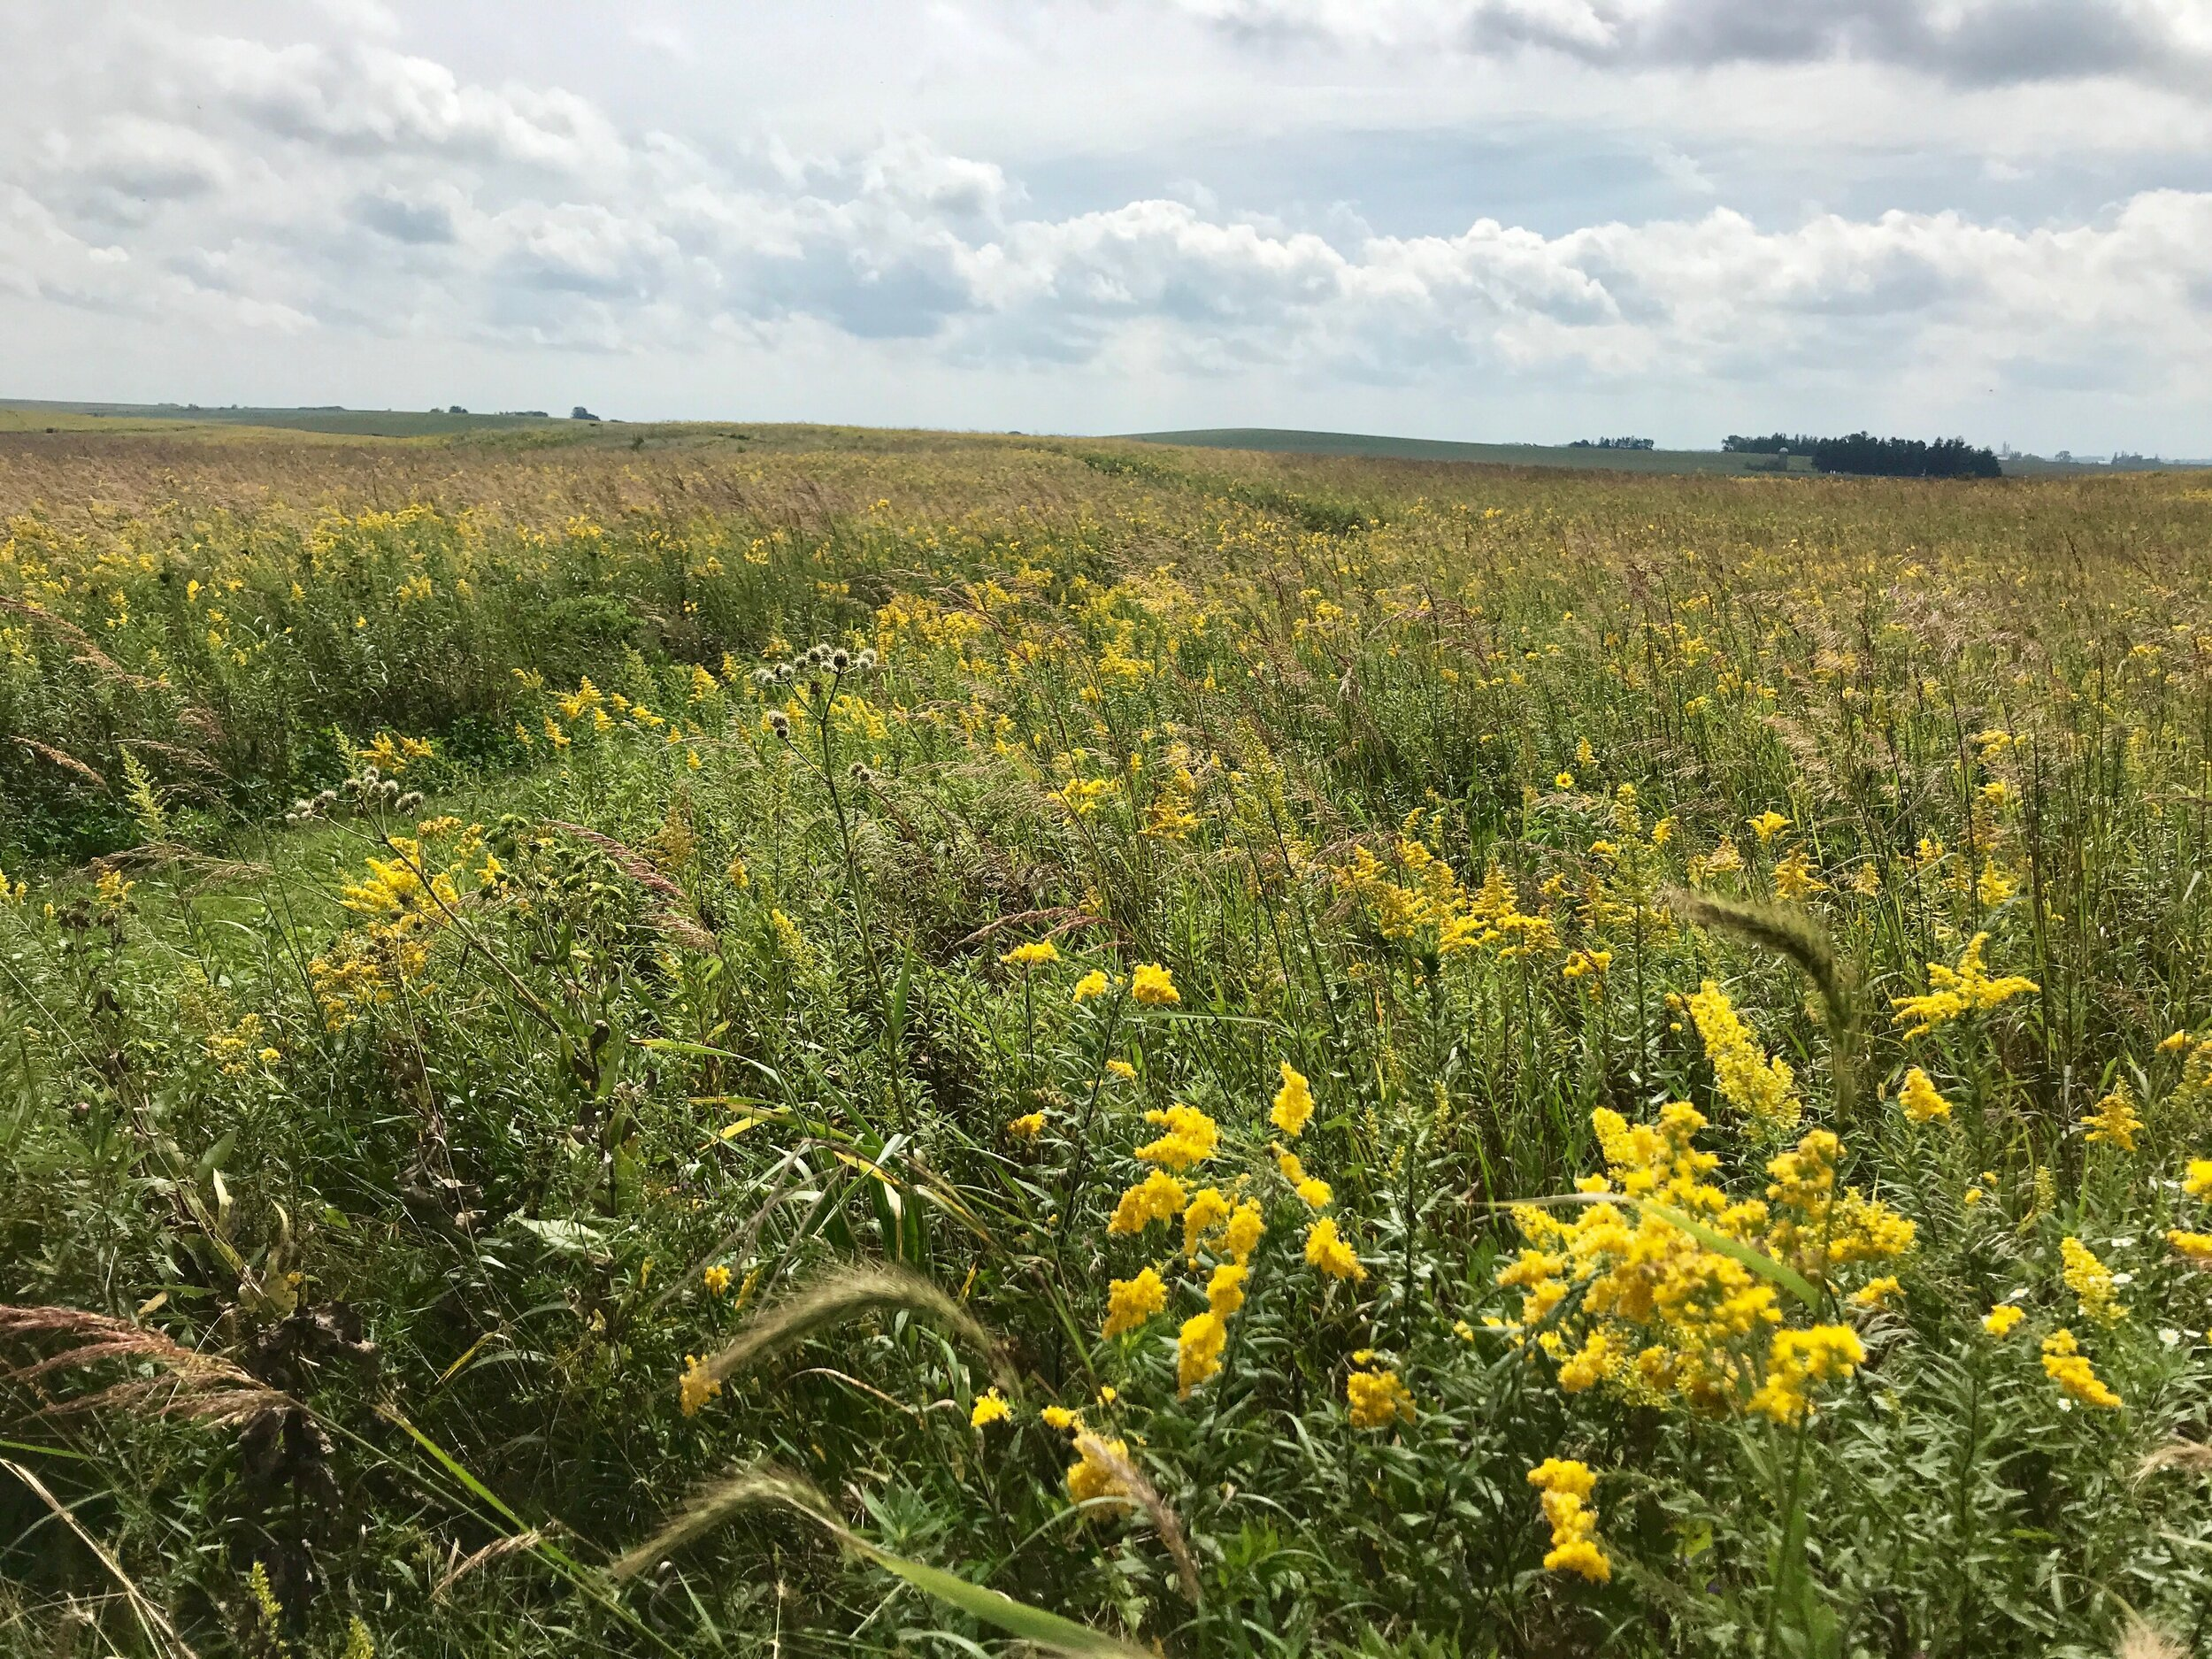 Goose Pond Sanctuary's Browne Prairie is a sea of yellow this fall, full of goldenrod which monarchs love to nectar on. Photo by Madison Audubon